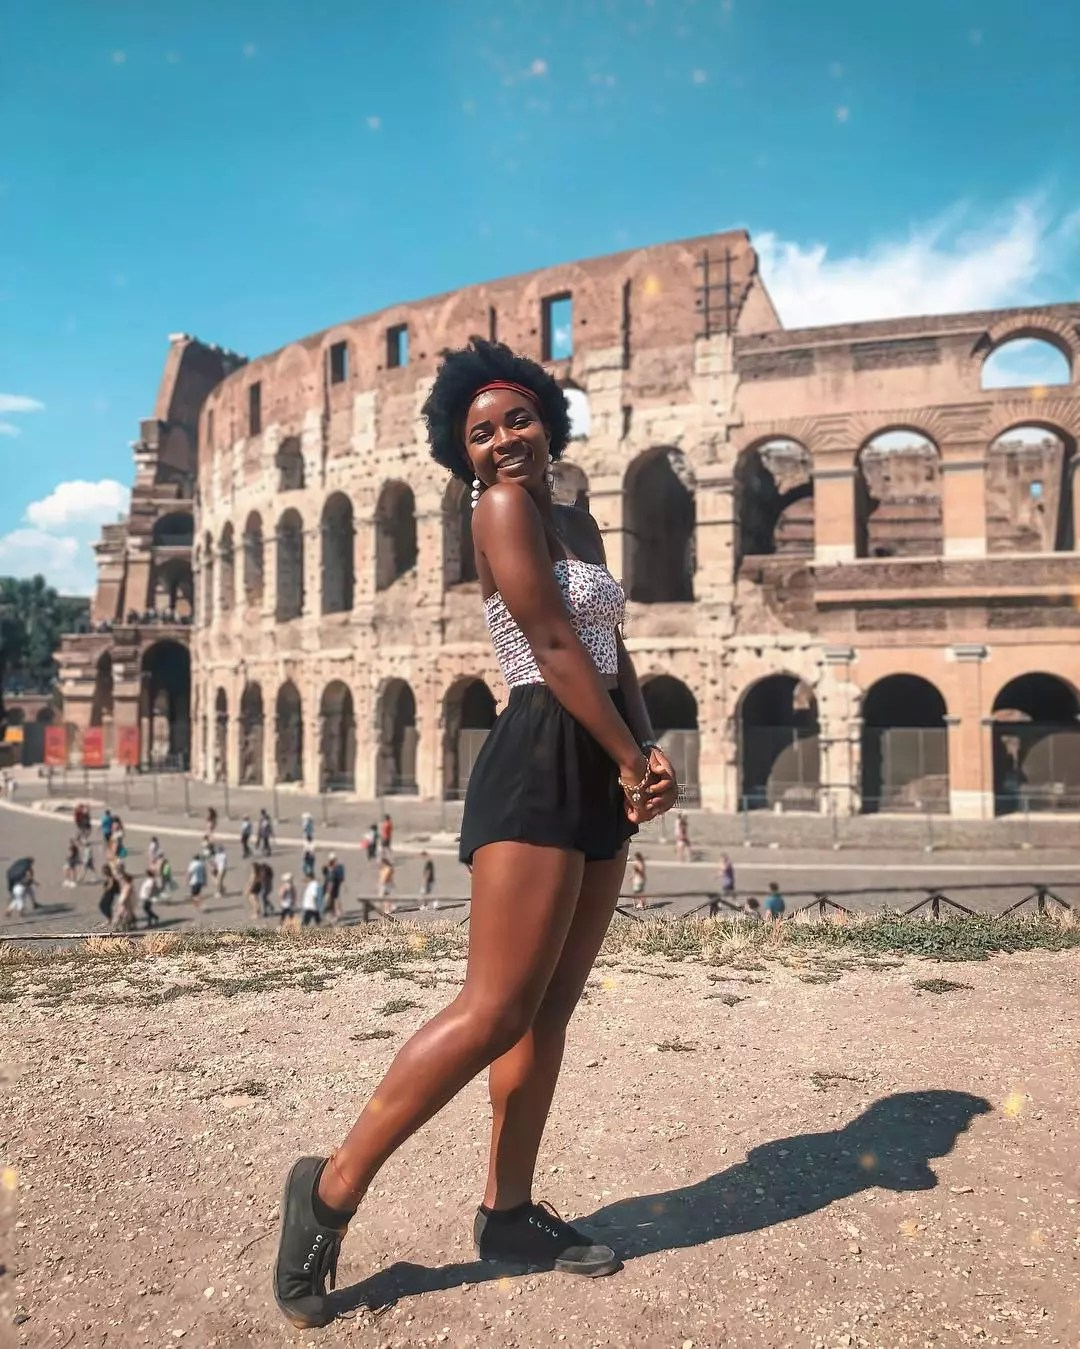 College Student on a Study Abroad Trip in Front of the Colisseum. Photo by Instagram user @nikkipaige1396